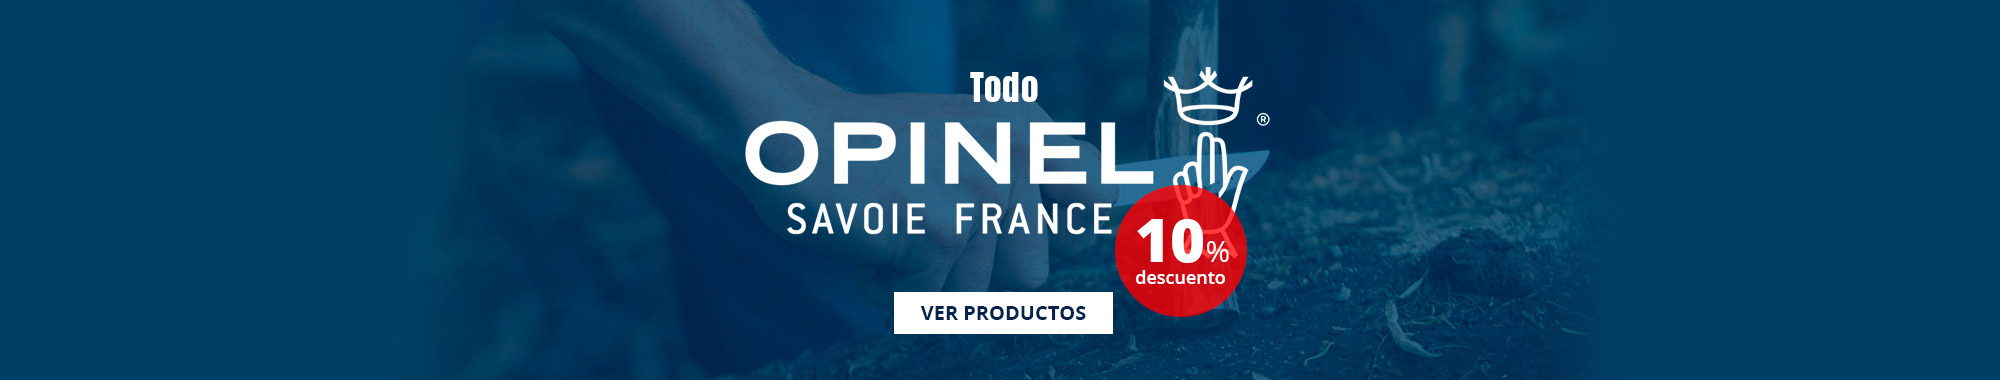 10% dto todo Opinel